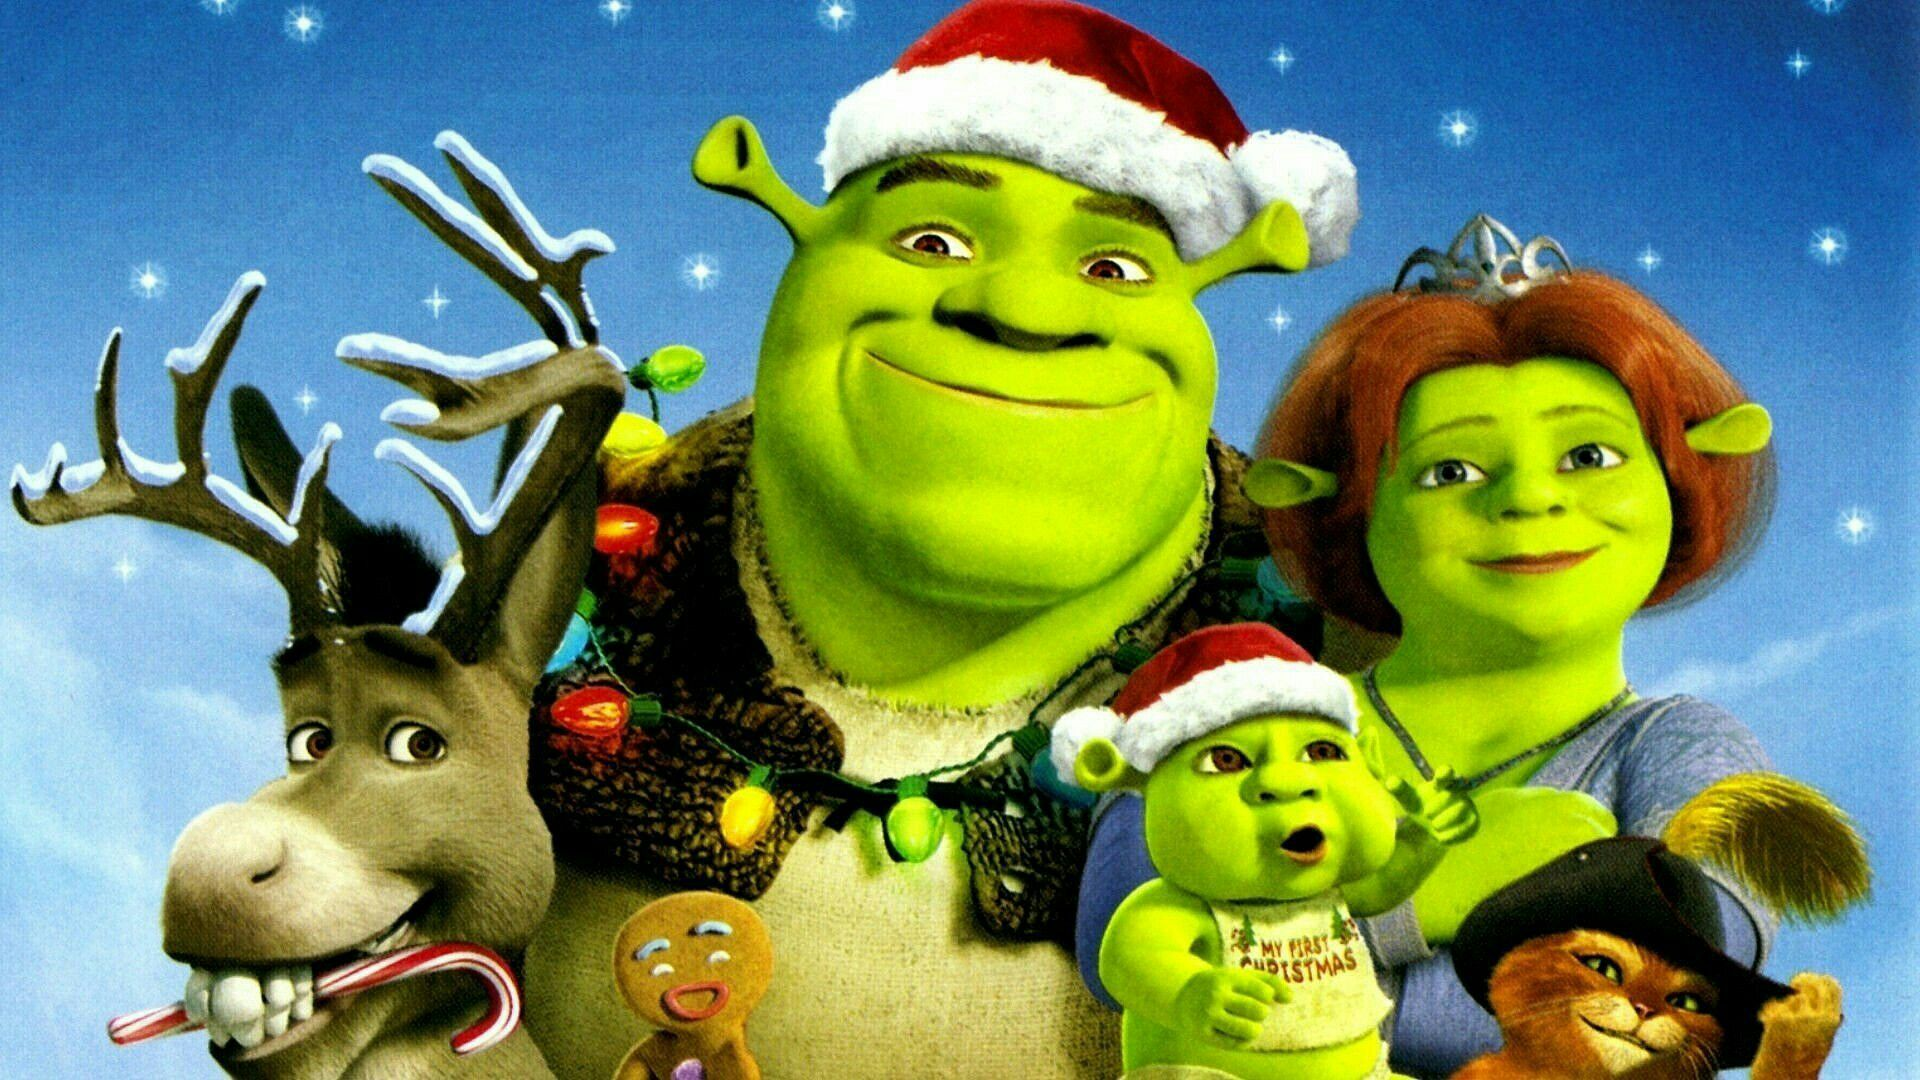 Pin By C M On Universal Studios Hollywood Animated Christmas Movies Christmas Movie Characters Animated Movies For Kids